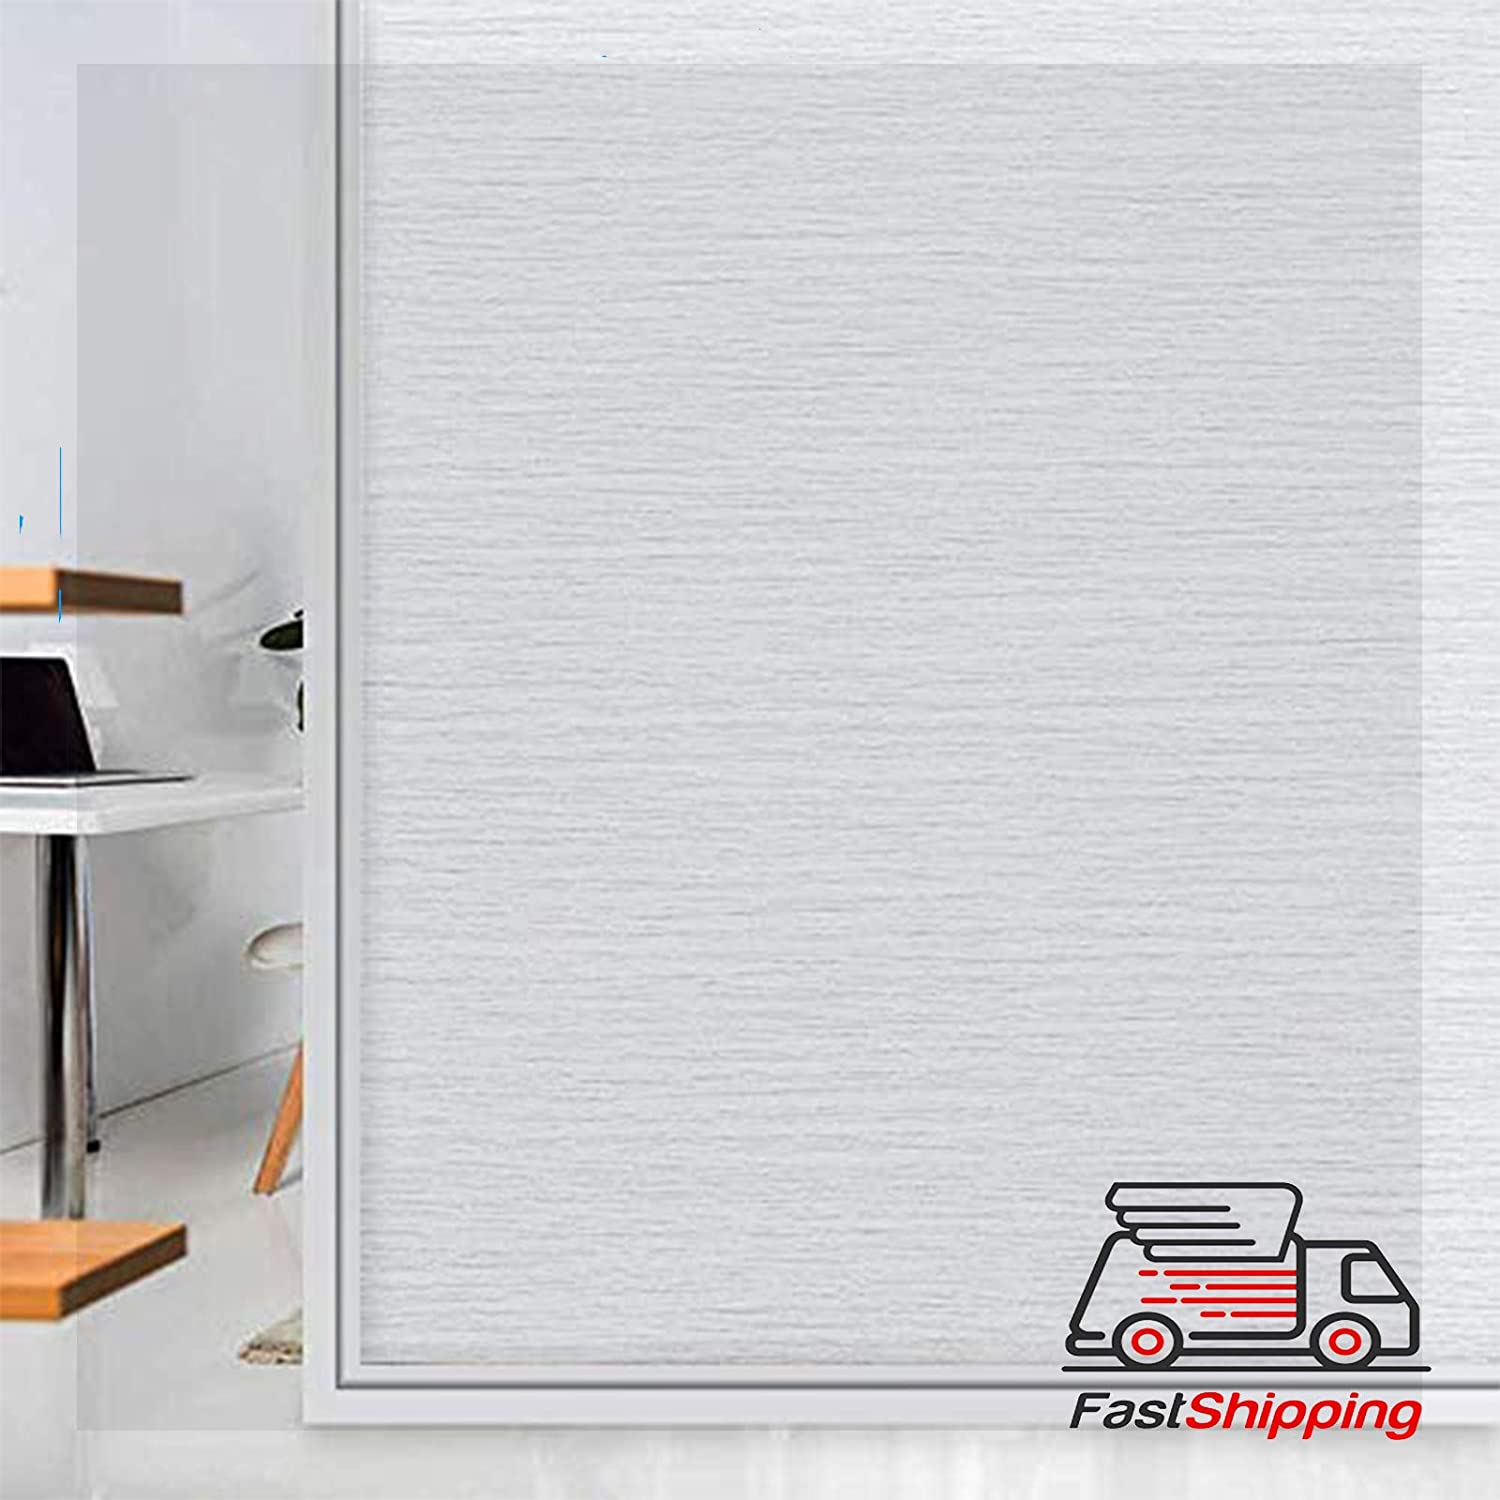 Privacy Window Films-Static Cling Window Privacy Film Tinting Translucent,Window Treatment Opaque Glass Covering Non Adhesive Reusable Door Stickers No Residue,Heat Control 35.4 inch x 157 inch